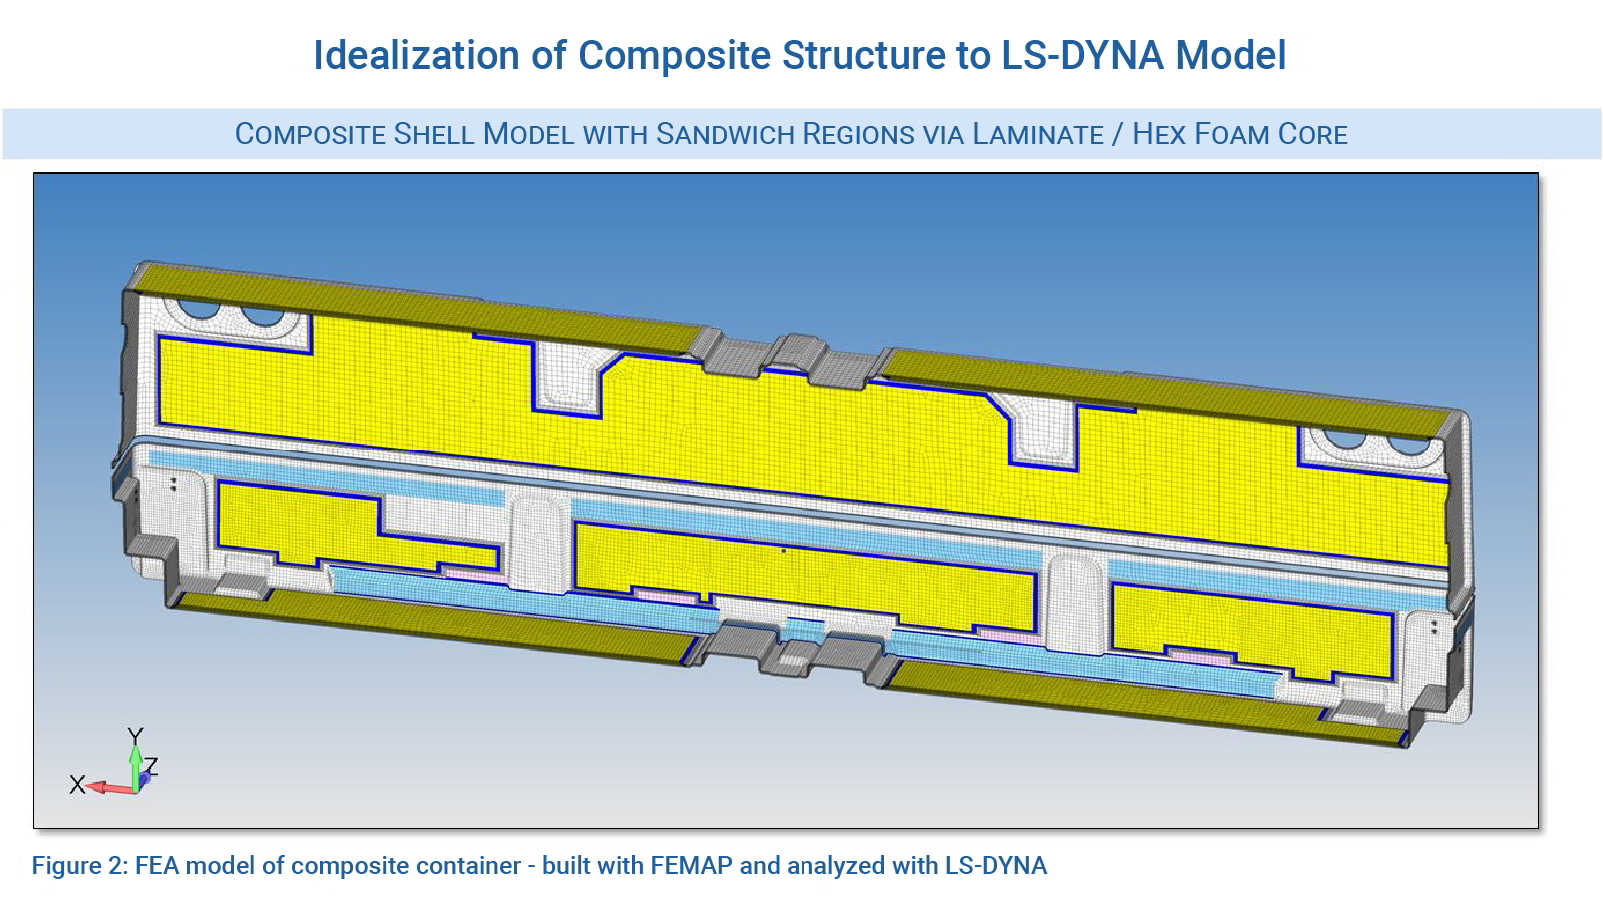 Figure 2 - FEA model of composite container – built with FEMAP and analyzed with LS-DYNA